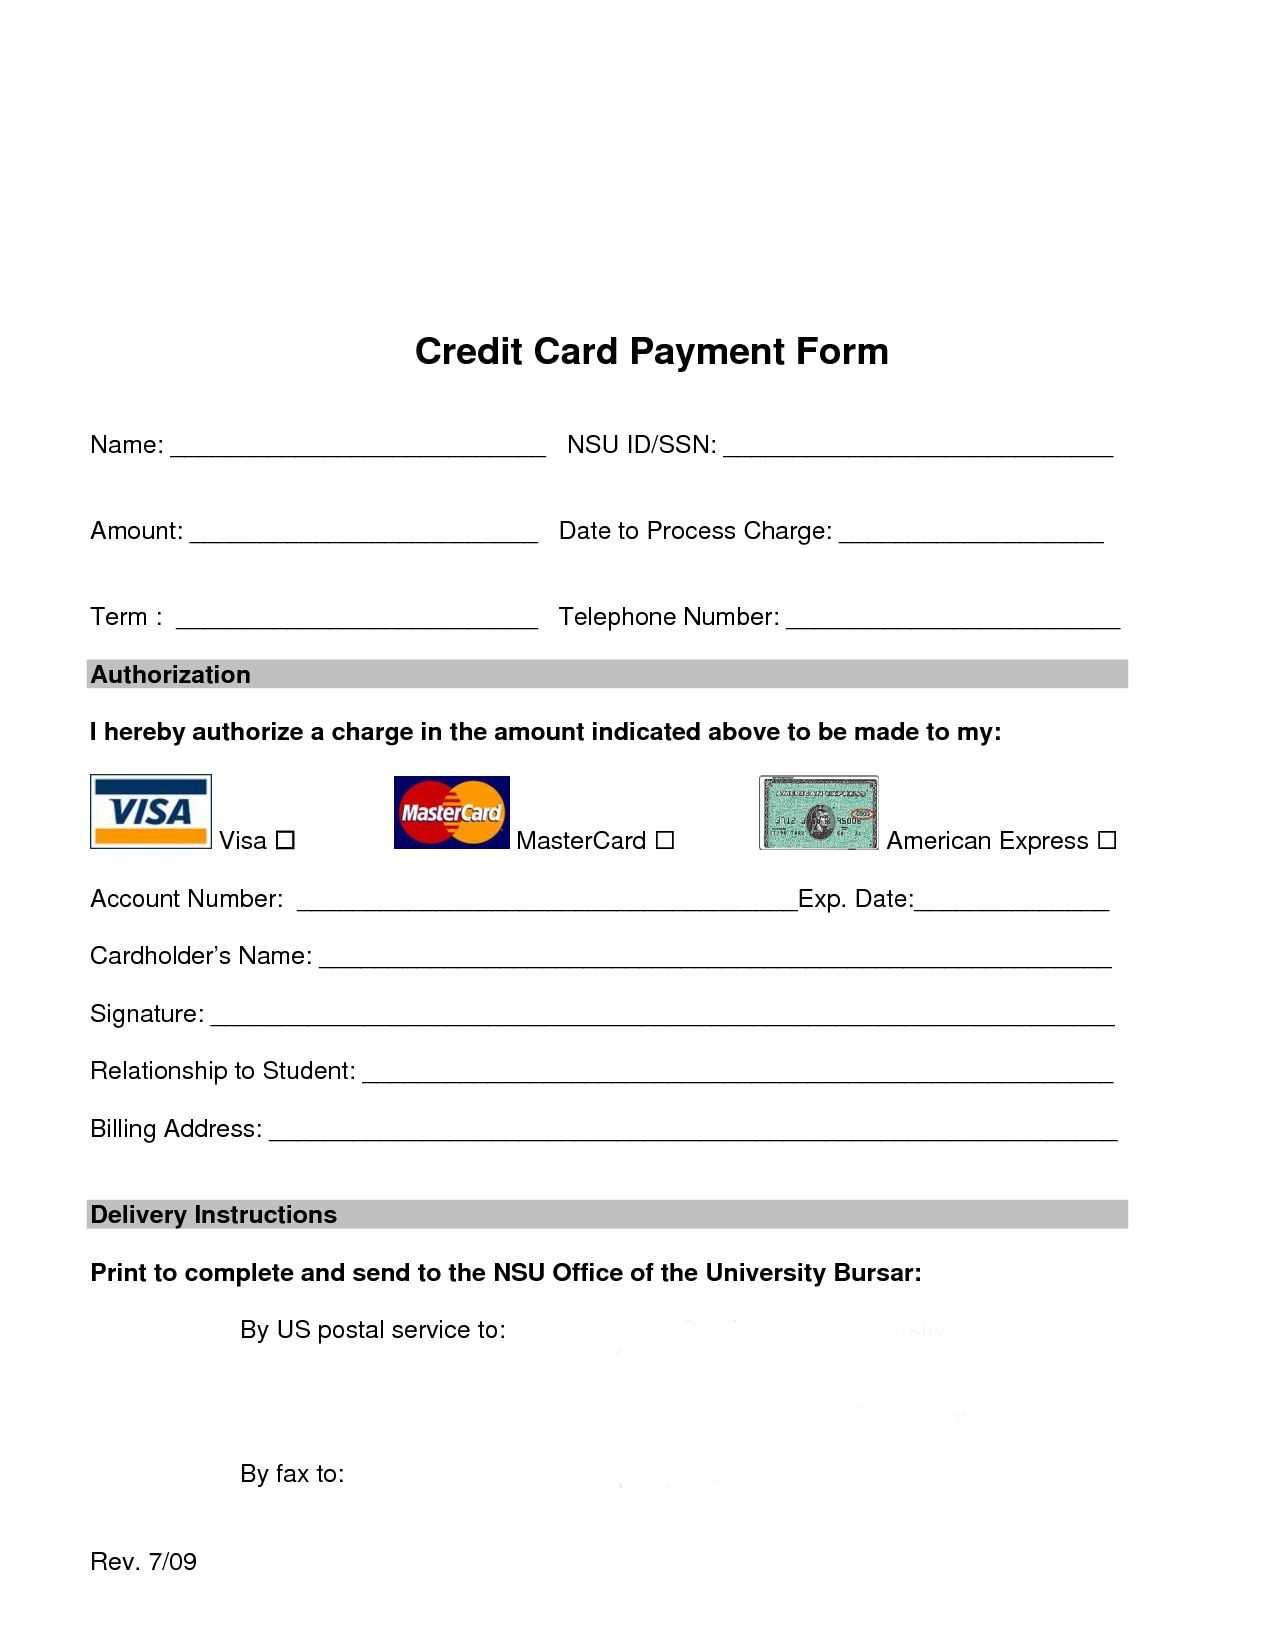 Credit Card Processing Form Template | Josiessteakhouse Inside Credit Card Payment Plan Template